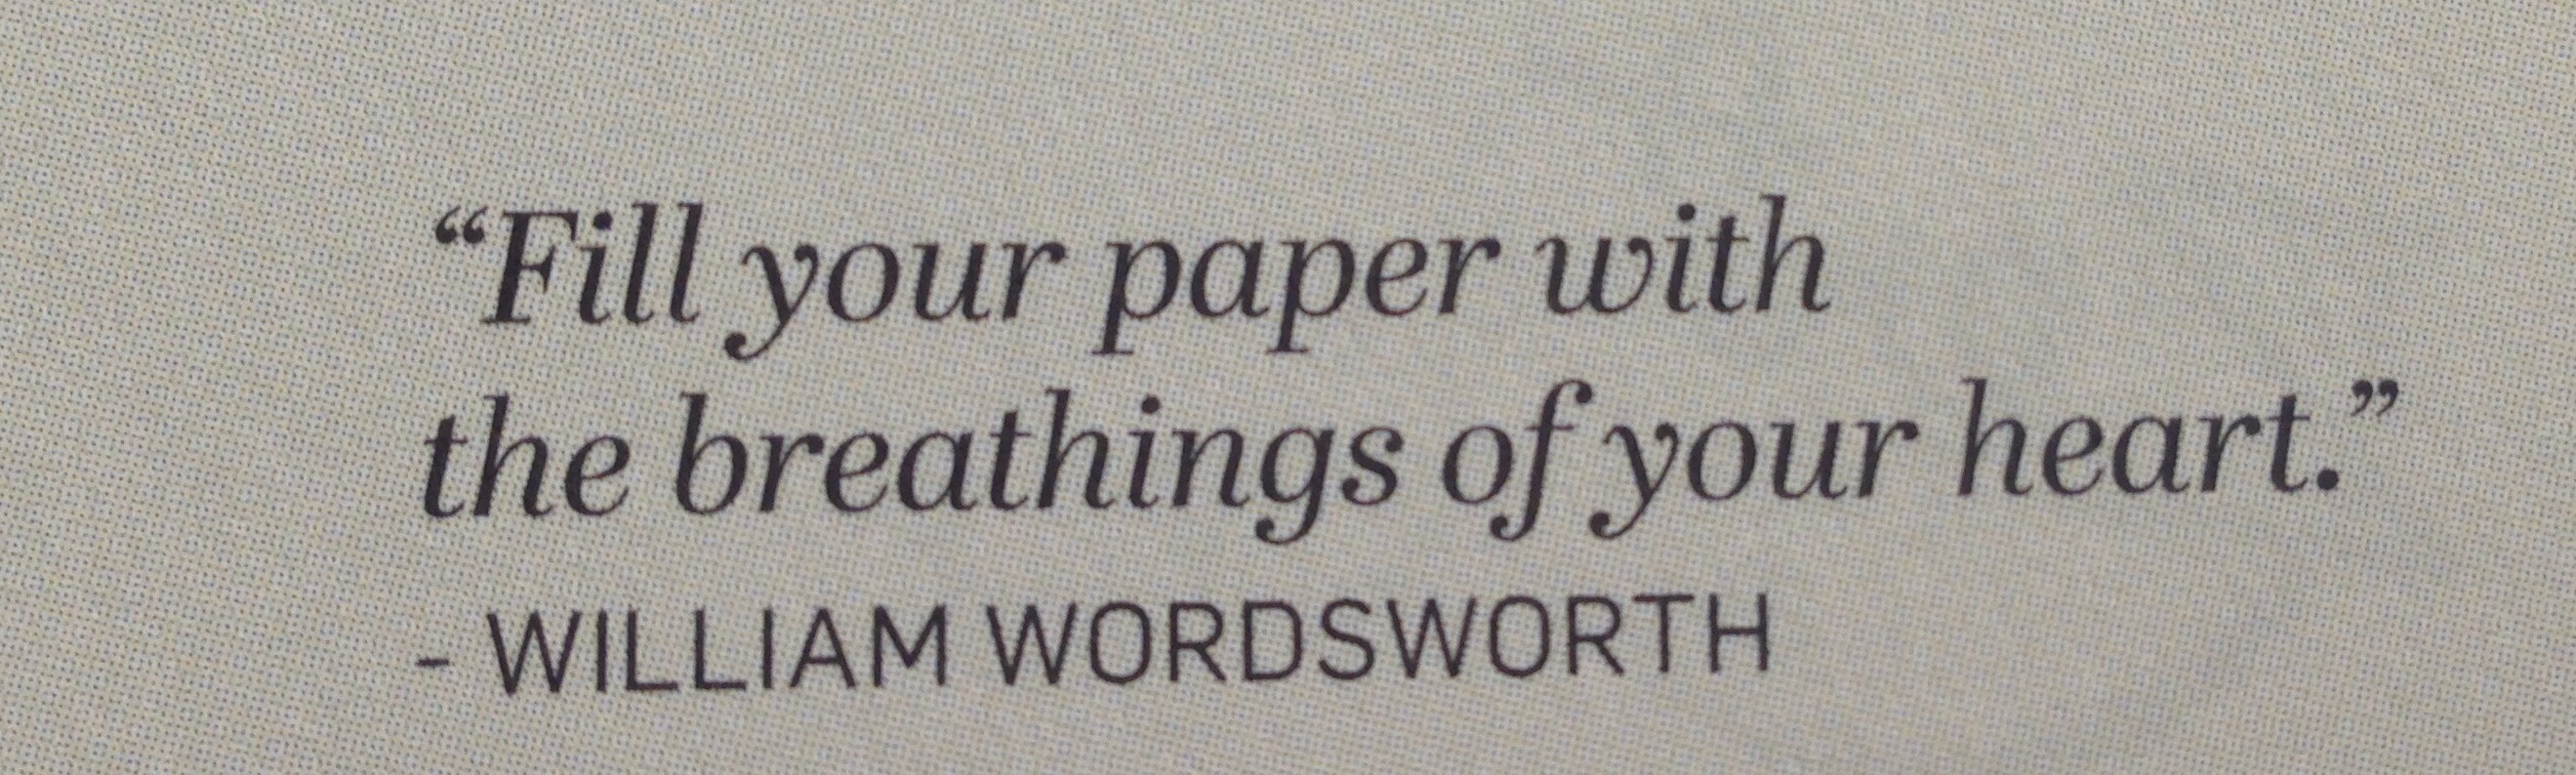 fill your paper with the breathings of the heart william wordsworth quote